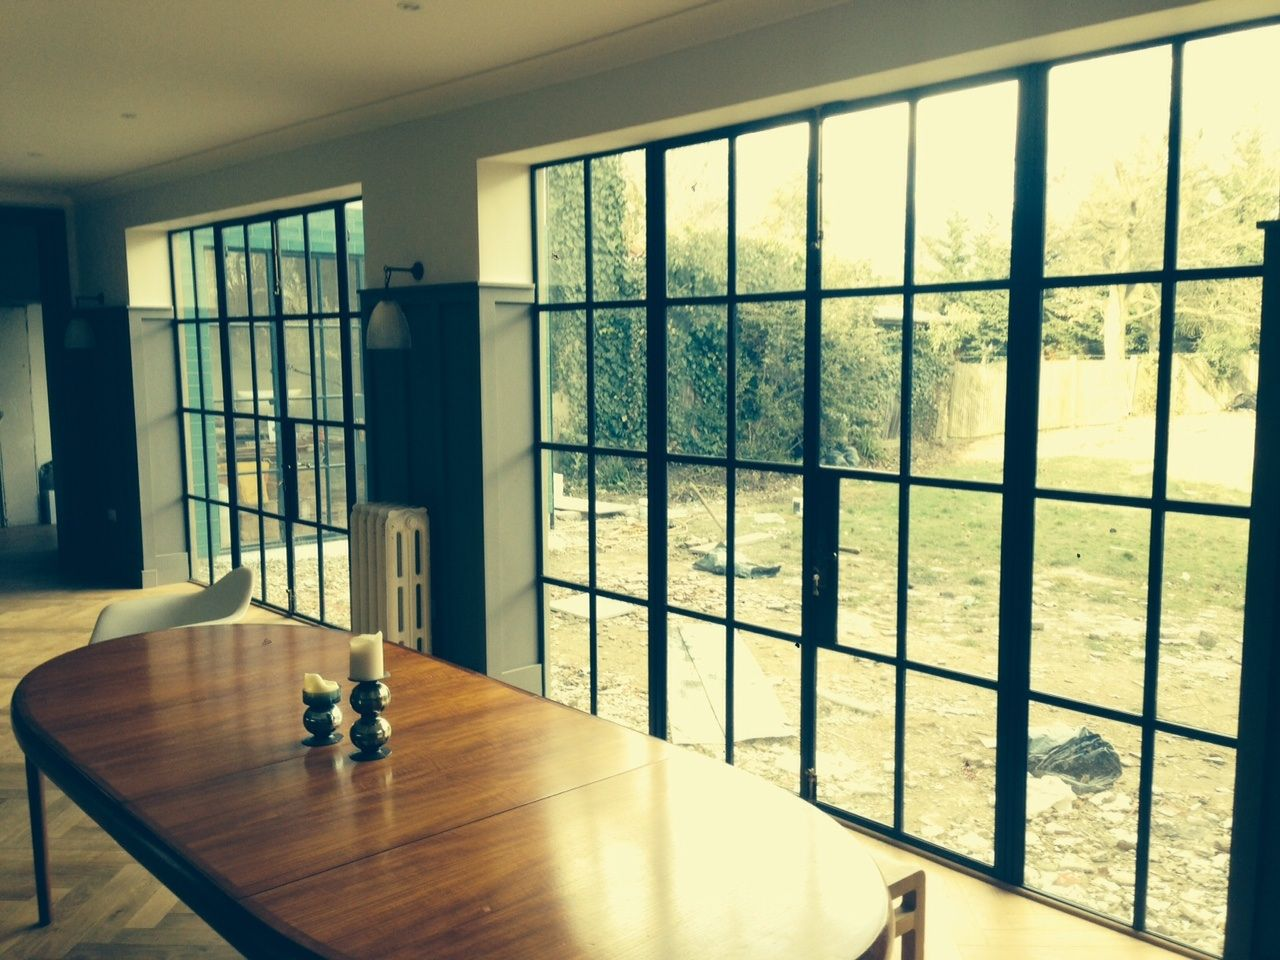 Gallery | Fabco Sanctuary u0026 The Steel Window Company & Gallery | Fabco Sanctuary u0026 The Steel Window Company | Kitchen ... pezcame.com